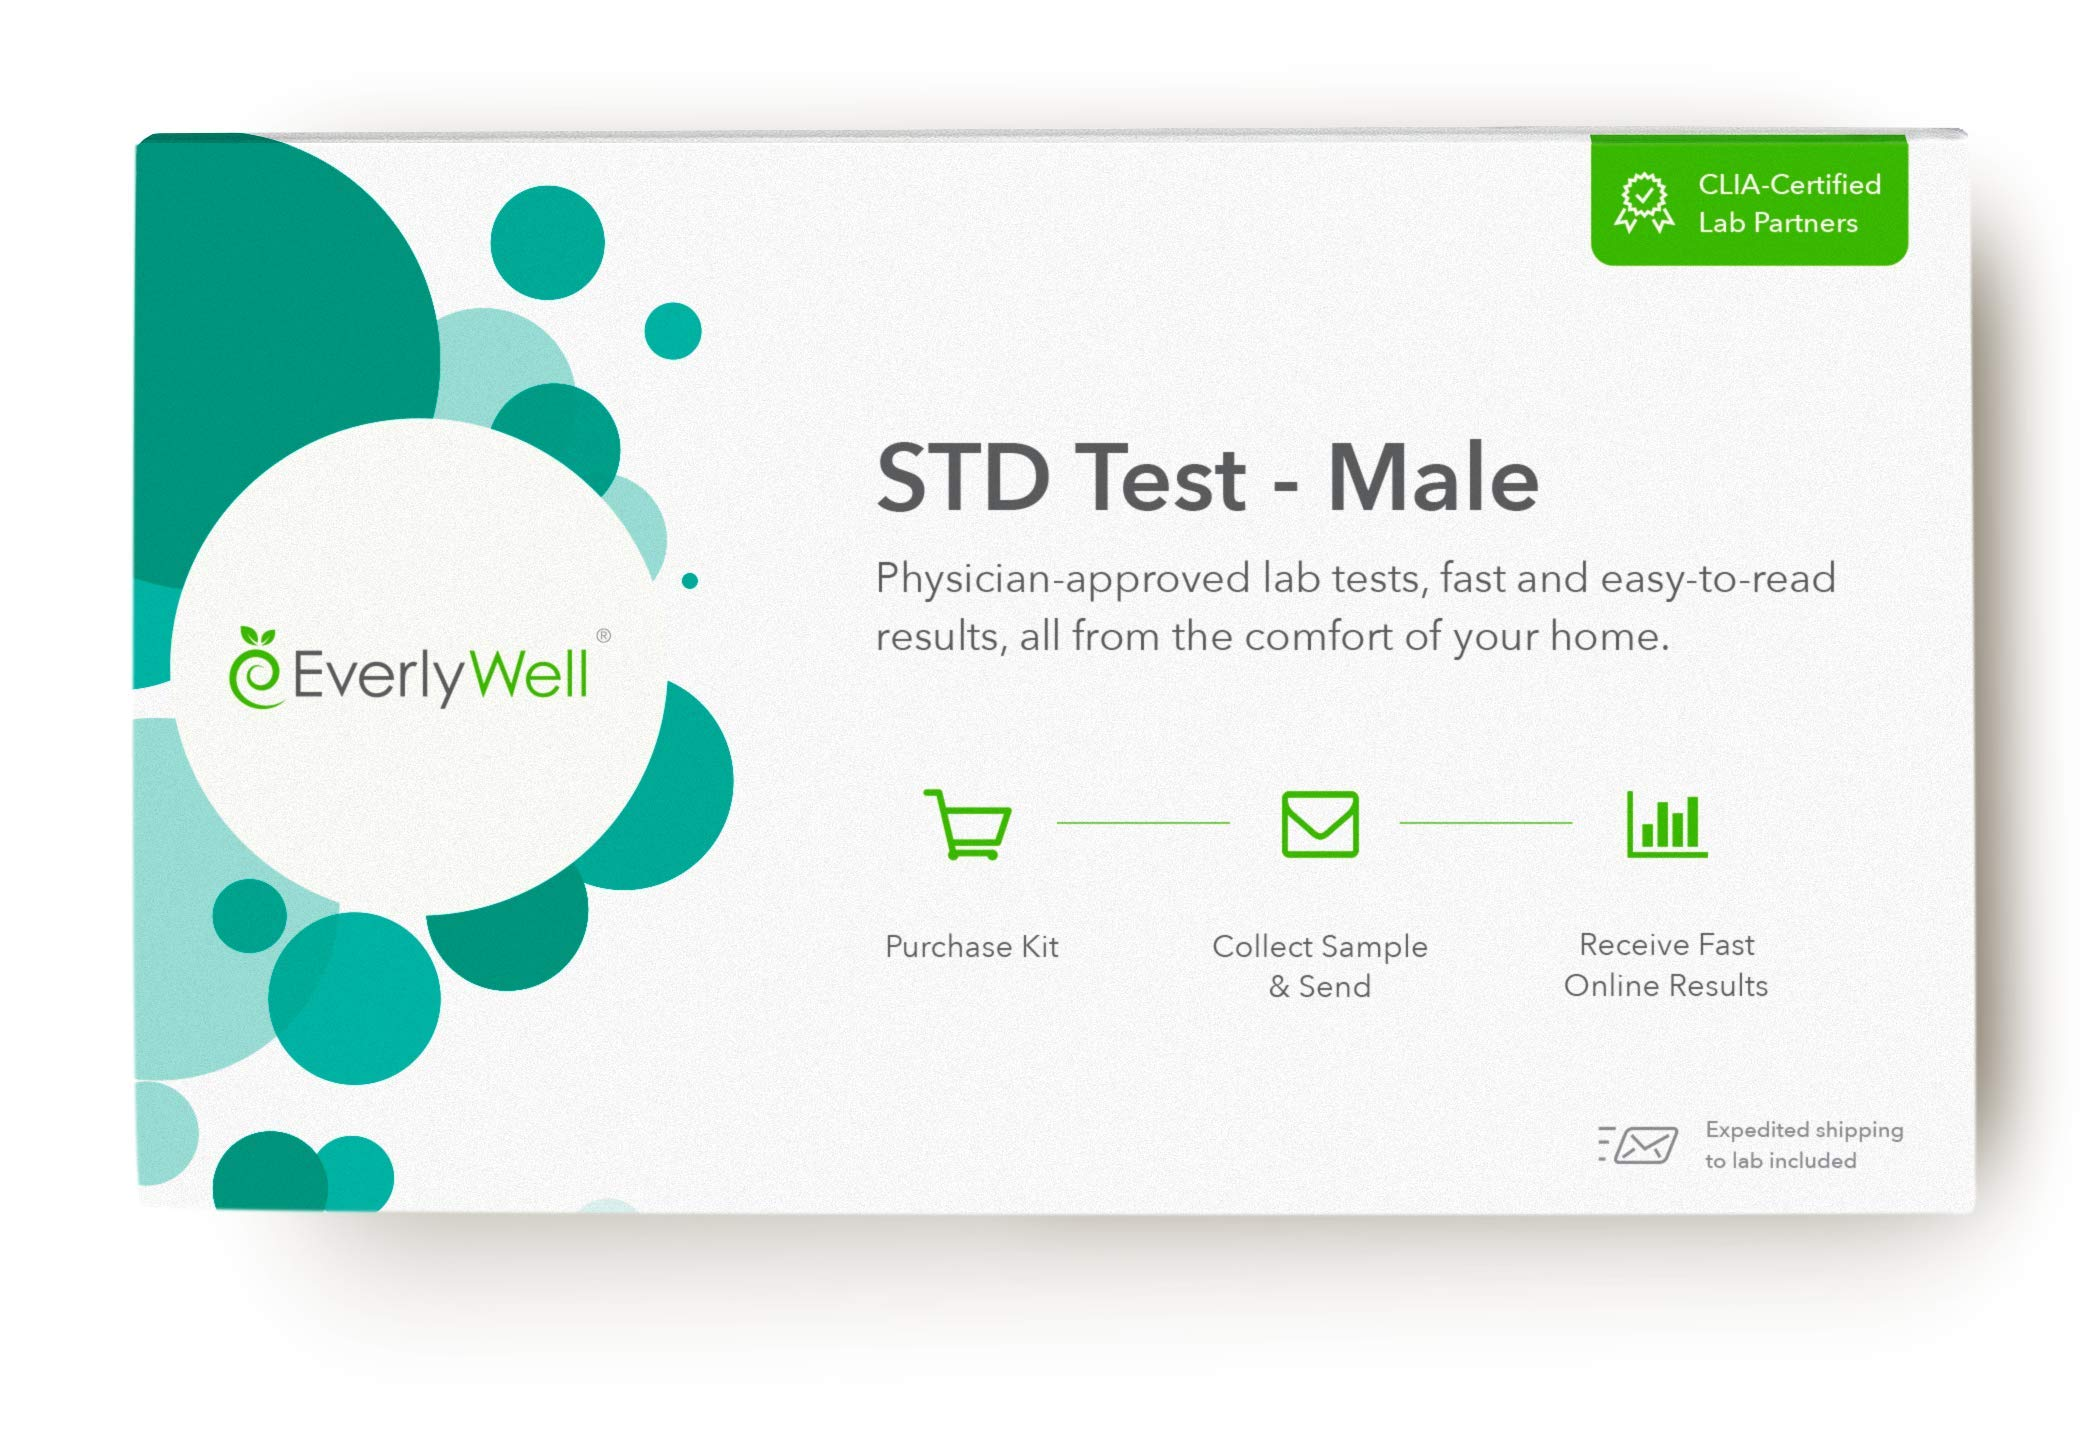 EverlyWell - Male at-Home STD Test - Discreetly Test for 7 Common STDs (Not Available in RI, NJ, NY, and MD) by Everly Well